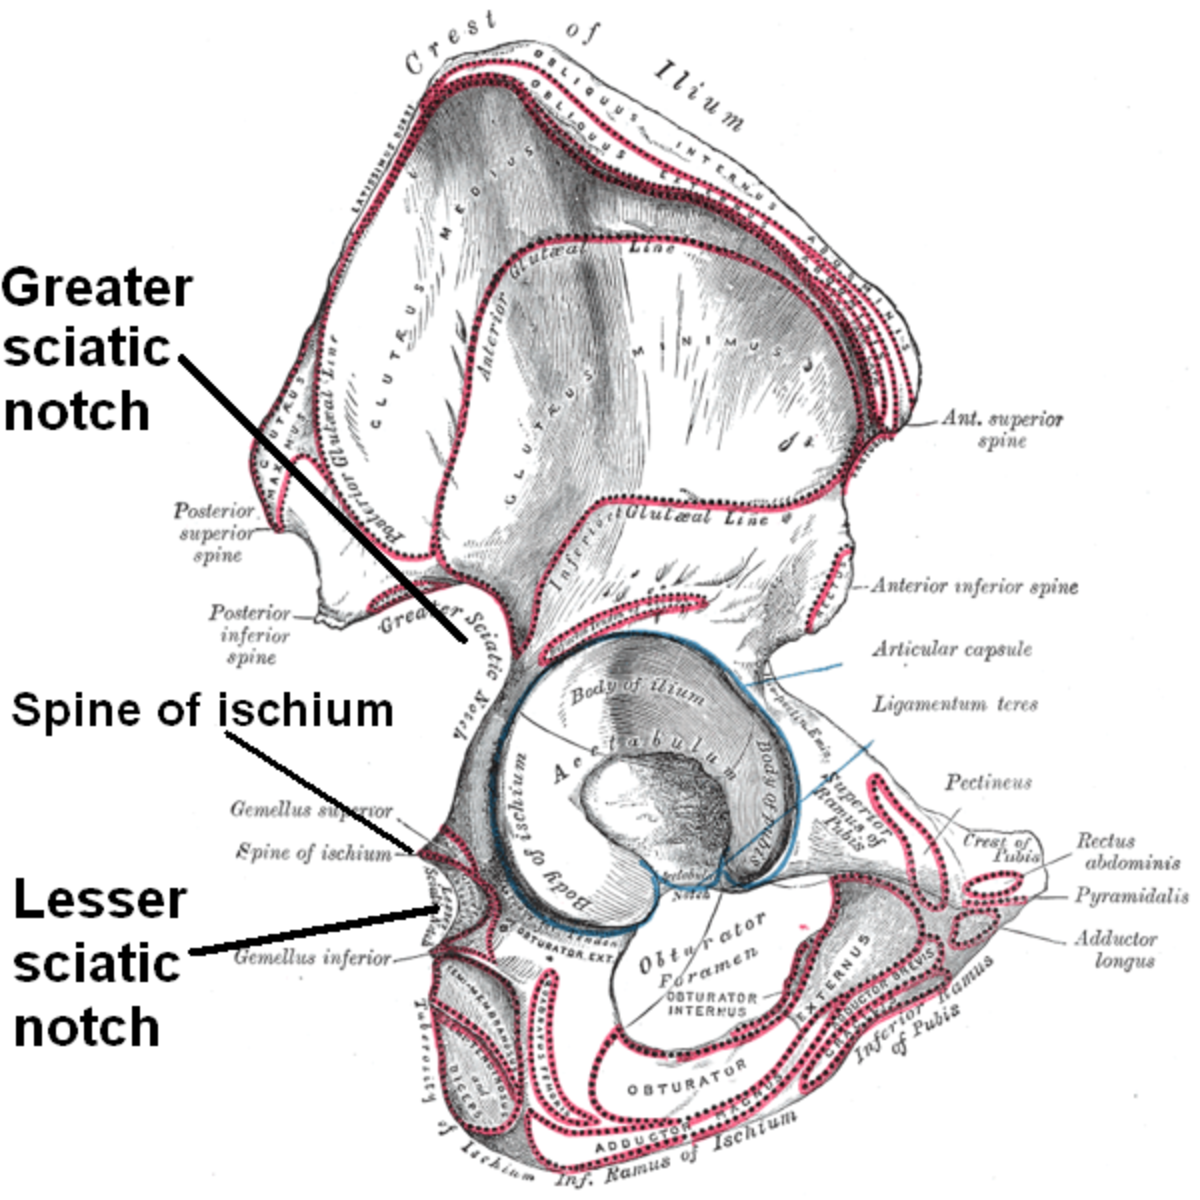 The right hip bone, external surface, showing the greater and lesser sciatic notches, separated by the ischial spine.